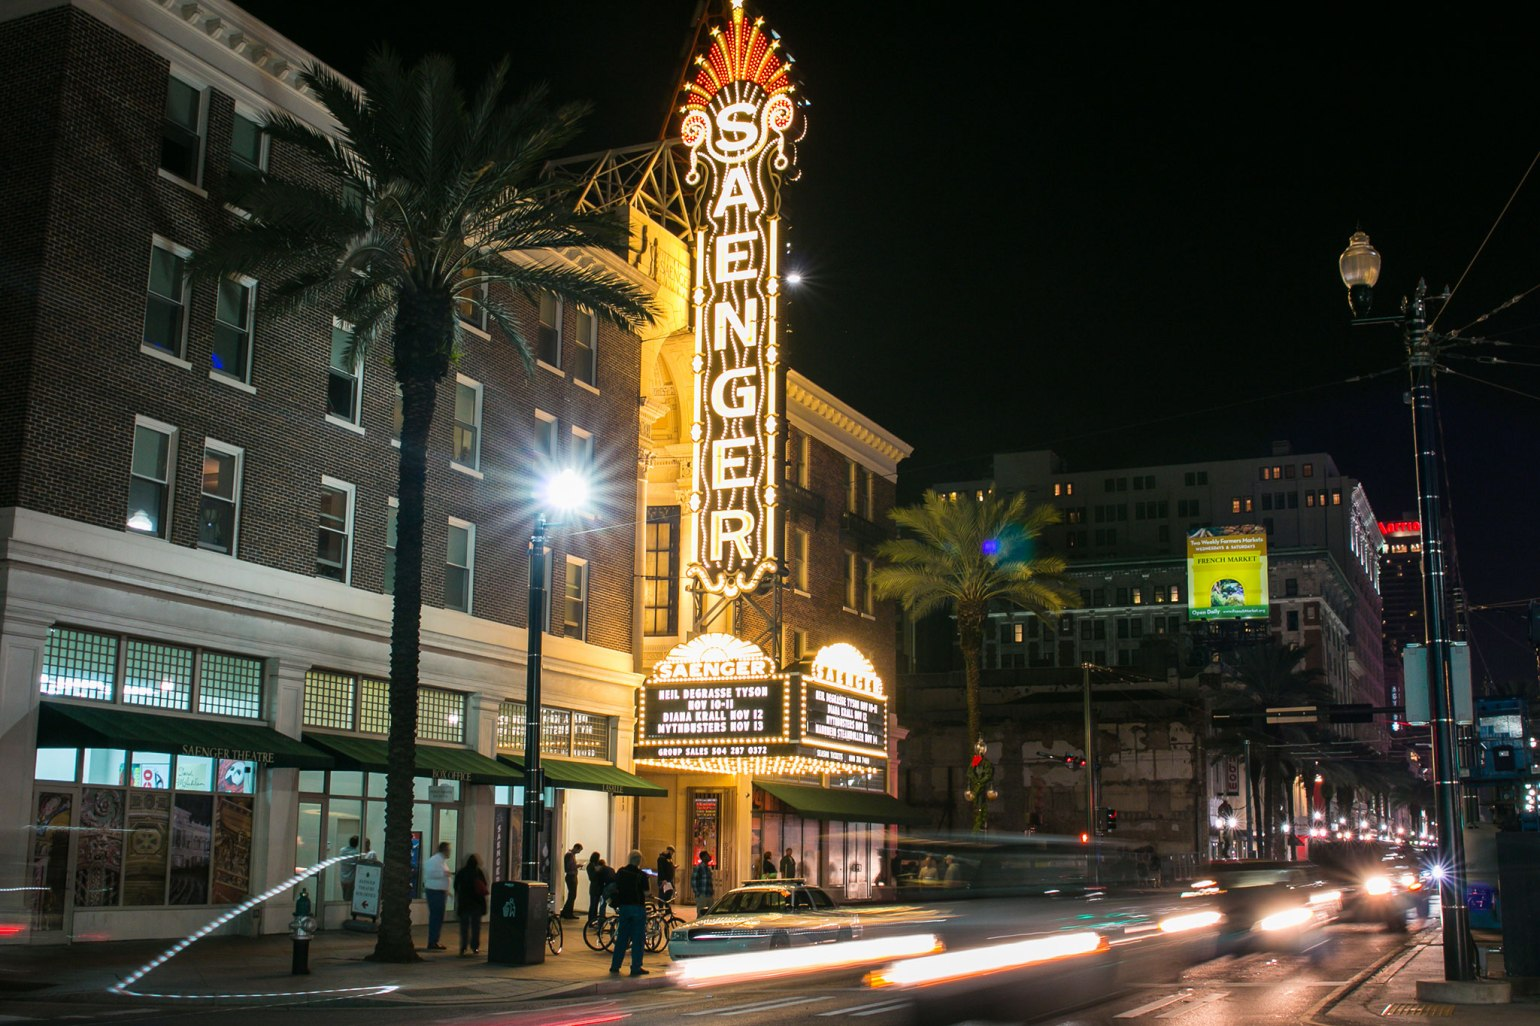 Saenger Theater A Must-See Place